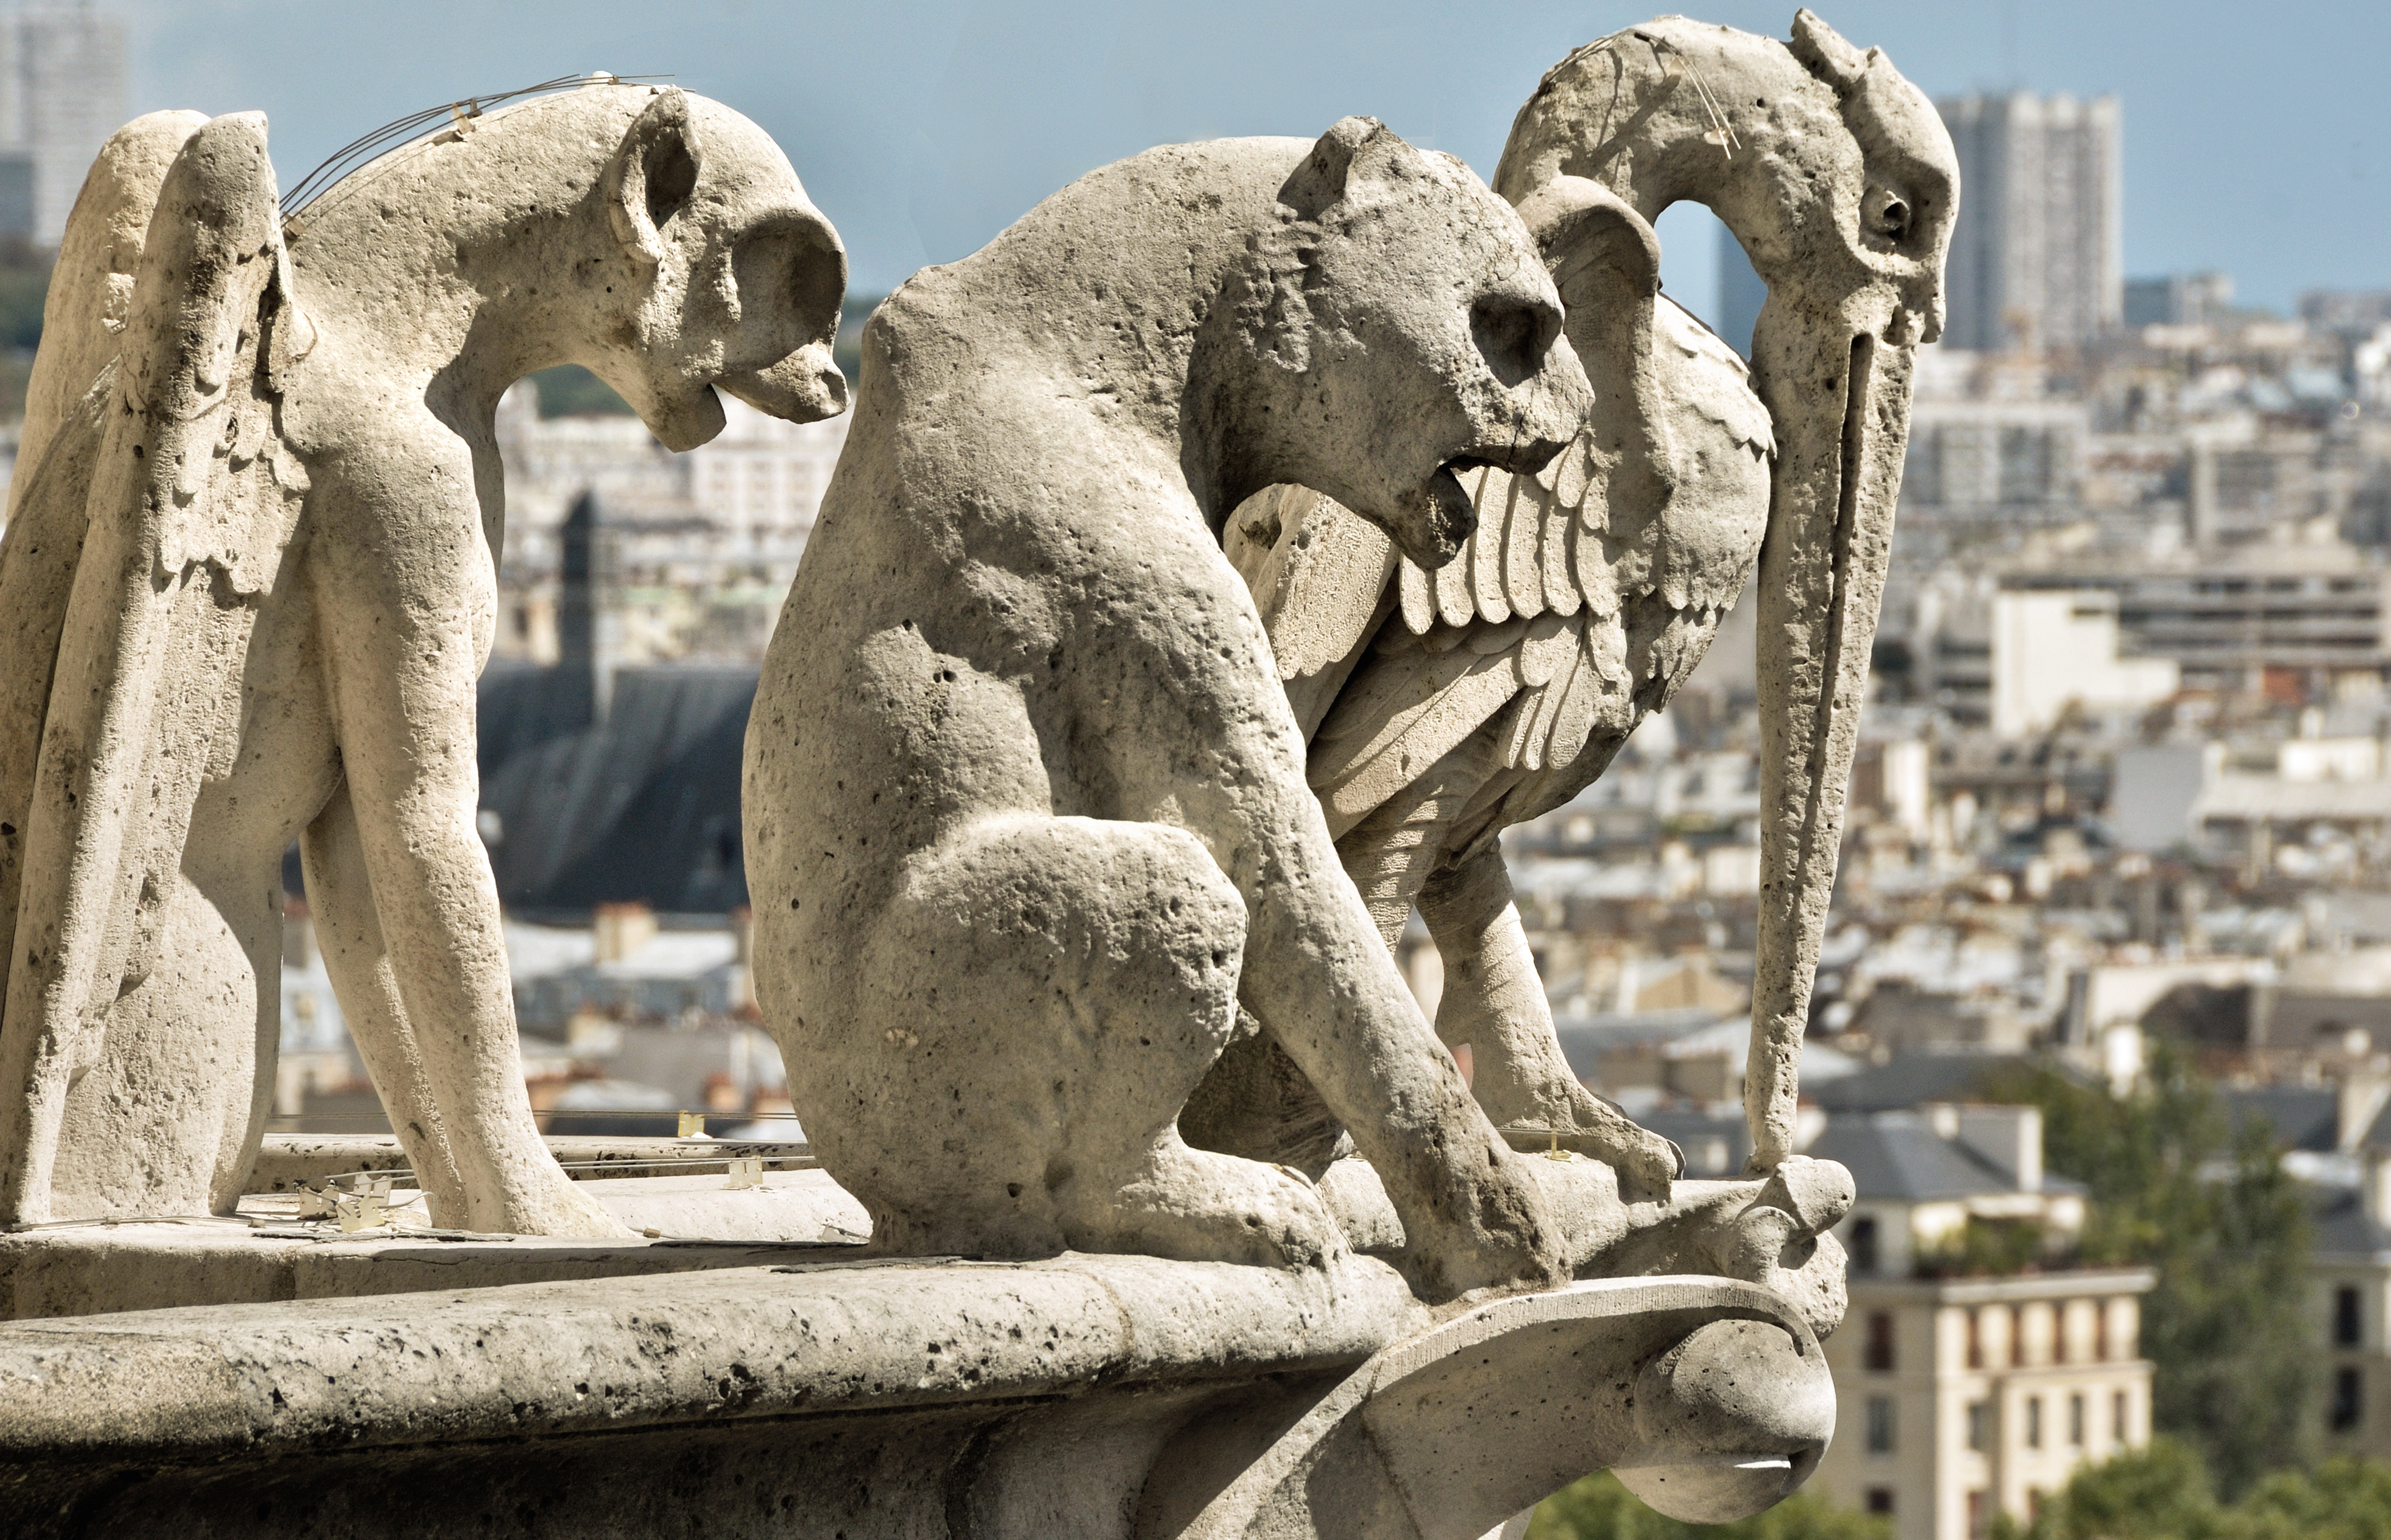 File:Gargoyles and chimeras 1, Notre-Dame de Paris 2011.jpg - Wikimedia Commons